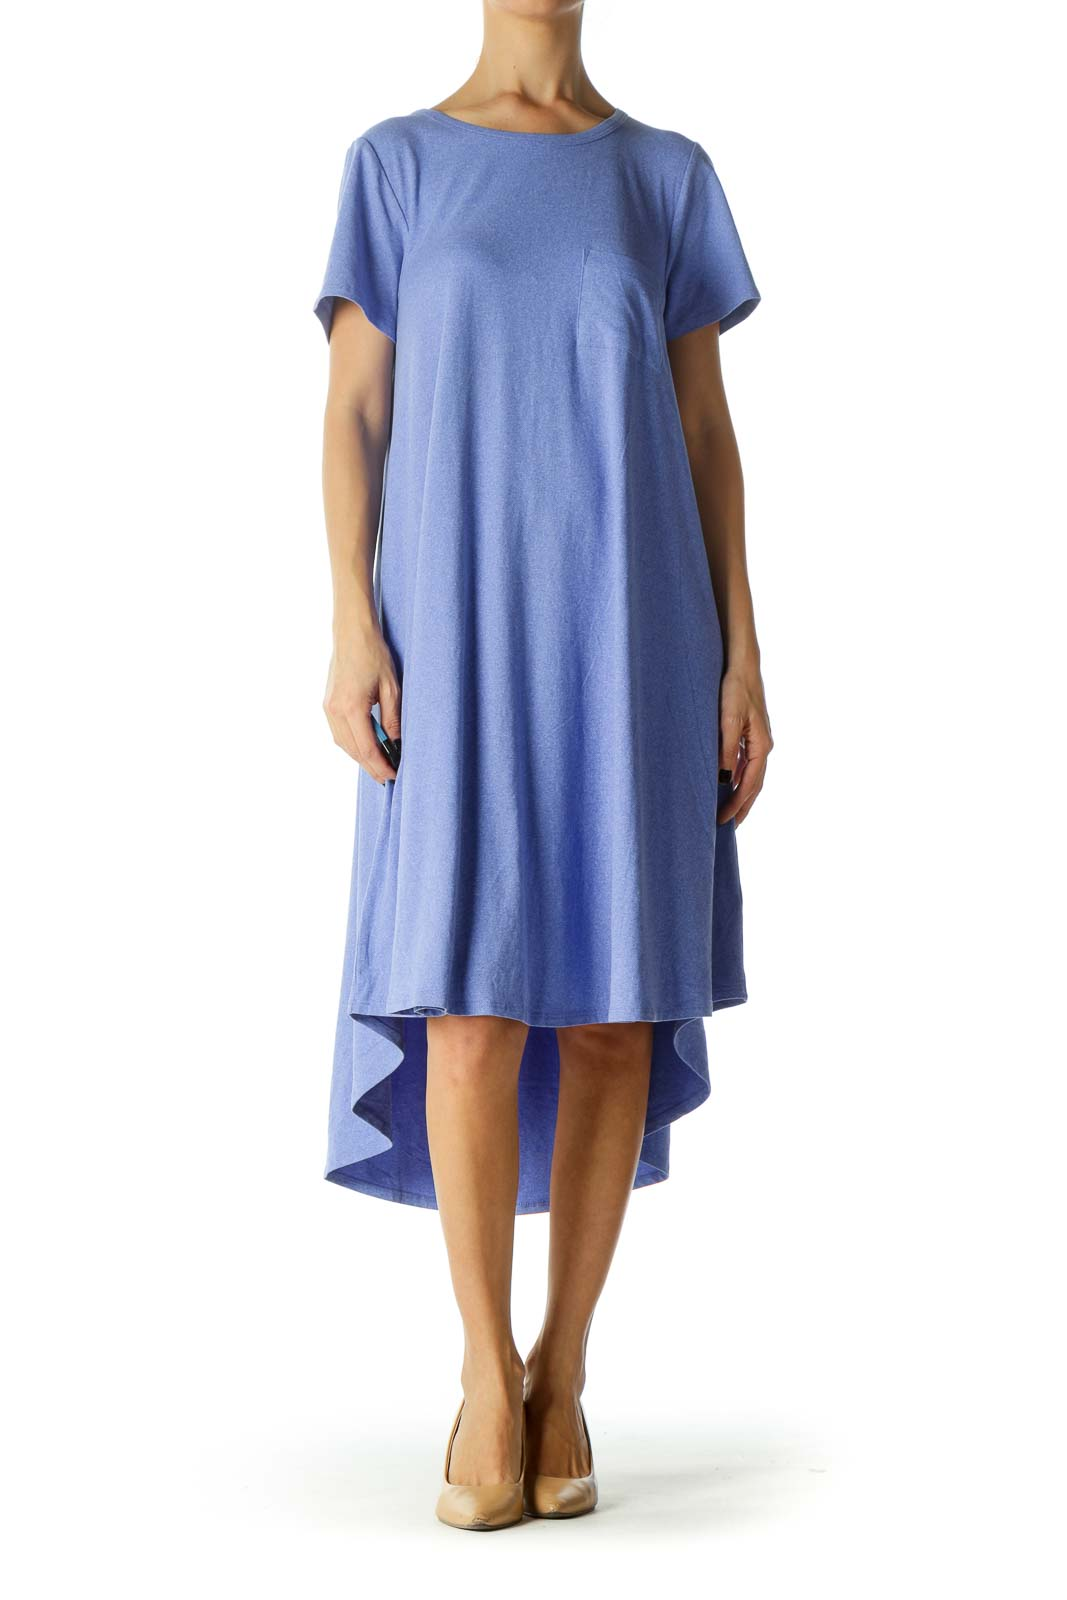 Blue Short Sleeve Single Pocket Shirt Dress